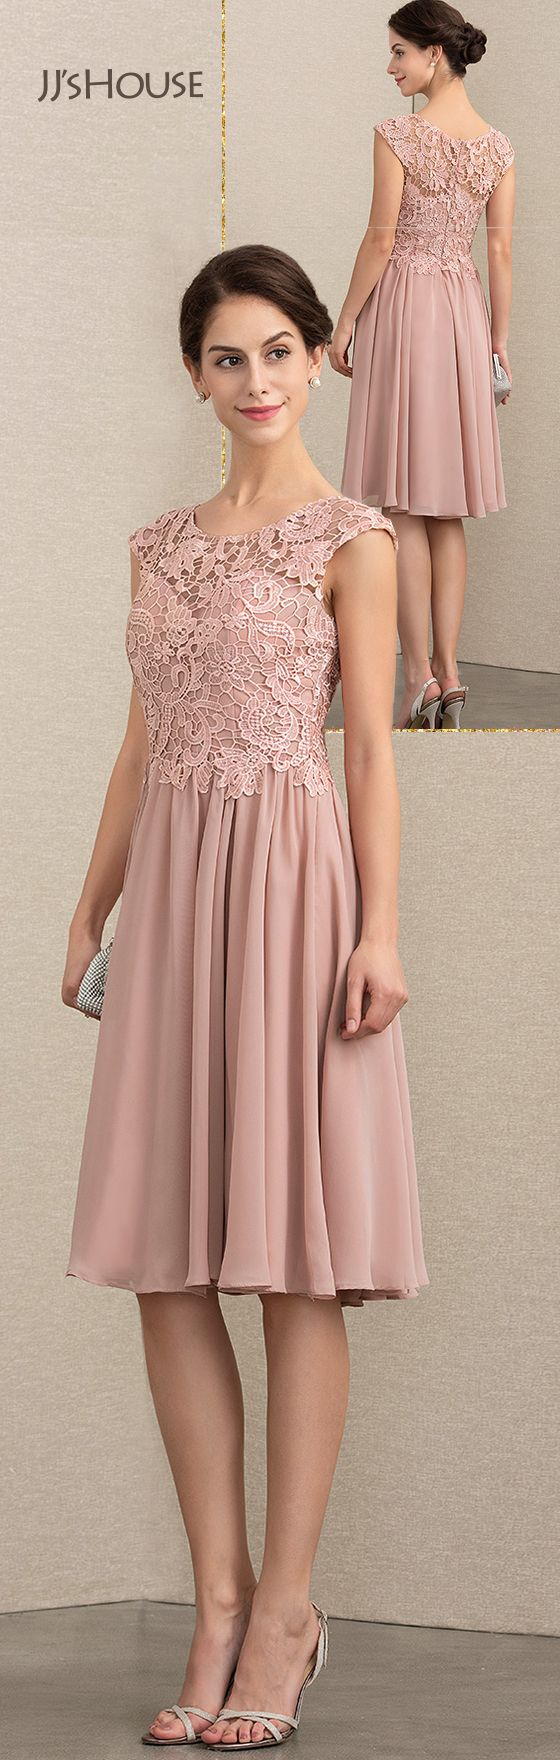 Us 148 00 A Line Scoop Neck Knee Length Chiffon Lace Mother Of The Bride Dress Jj S House Chiffon Lace Dresses Mother Of The Bride Dresses